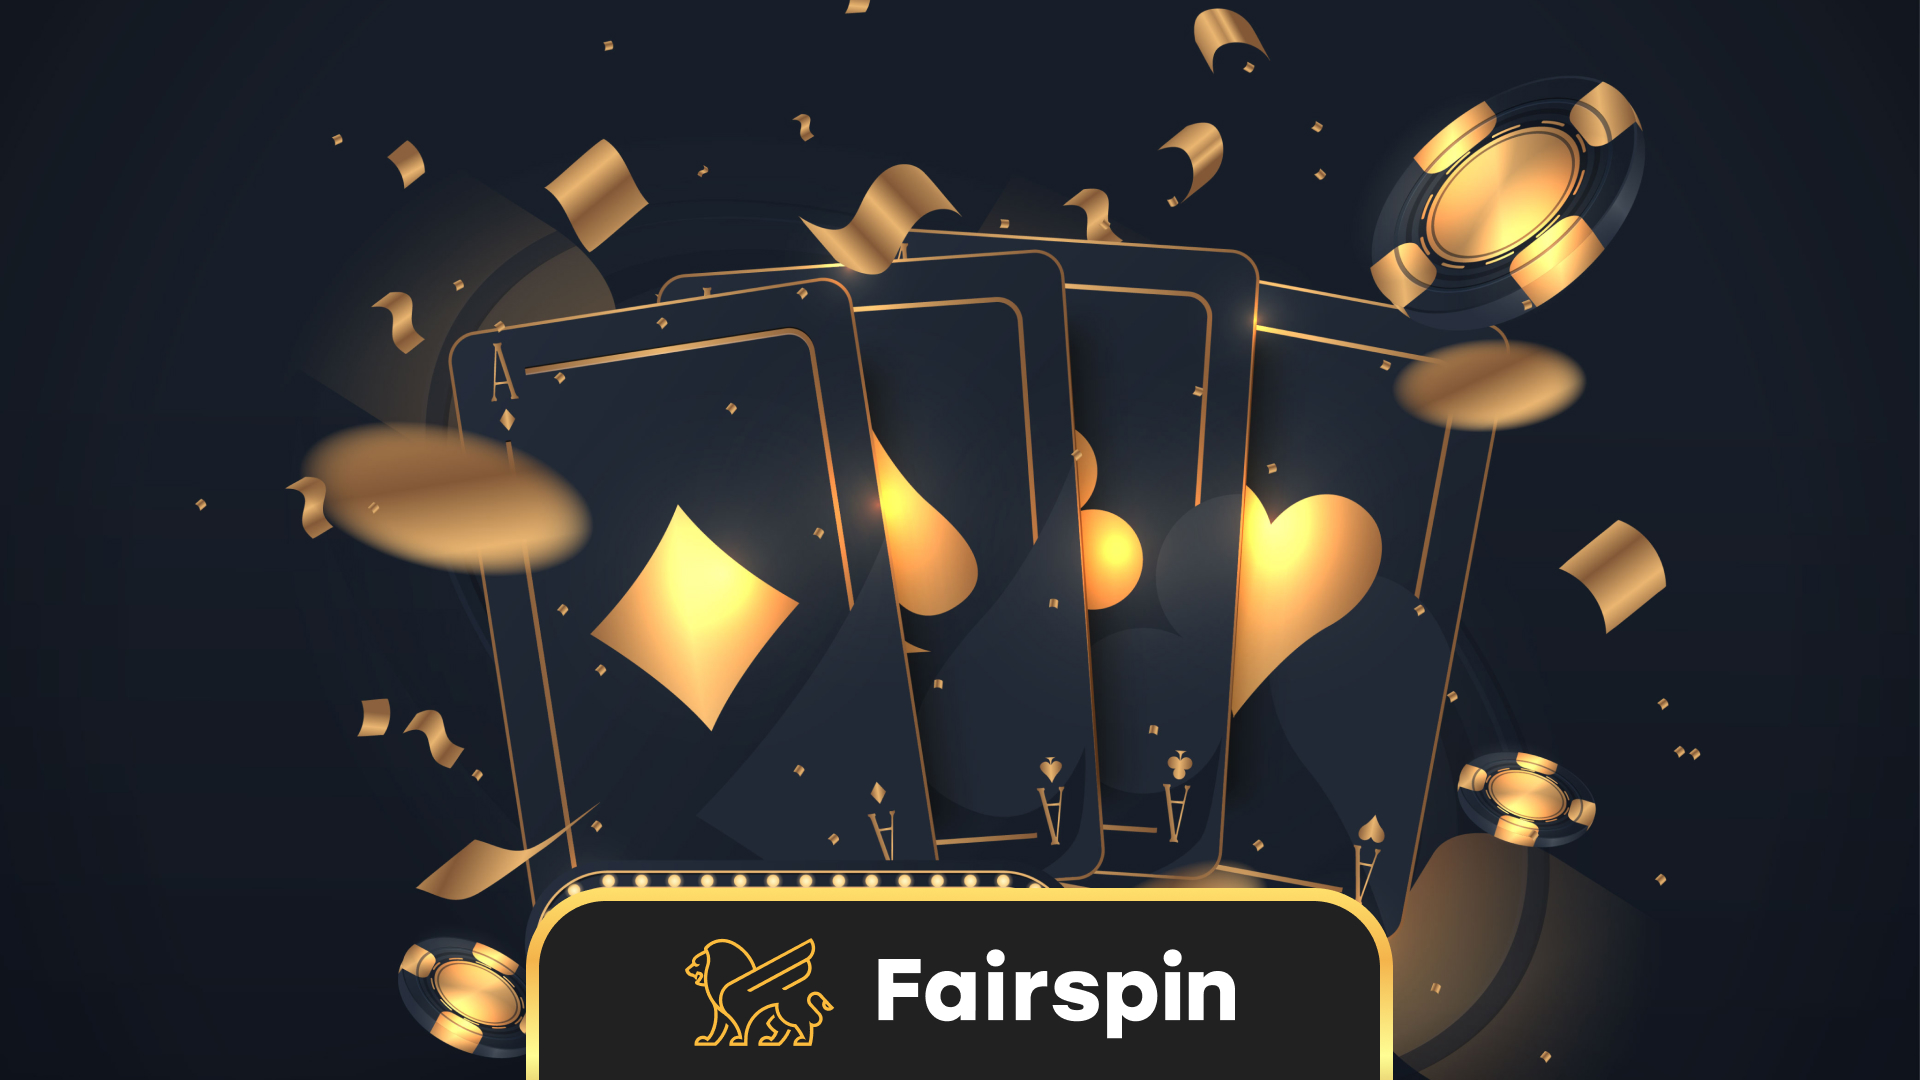 Classic Casino Games vs dApps: The Middle Way Is the Best